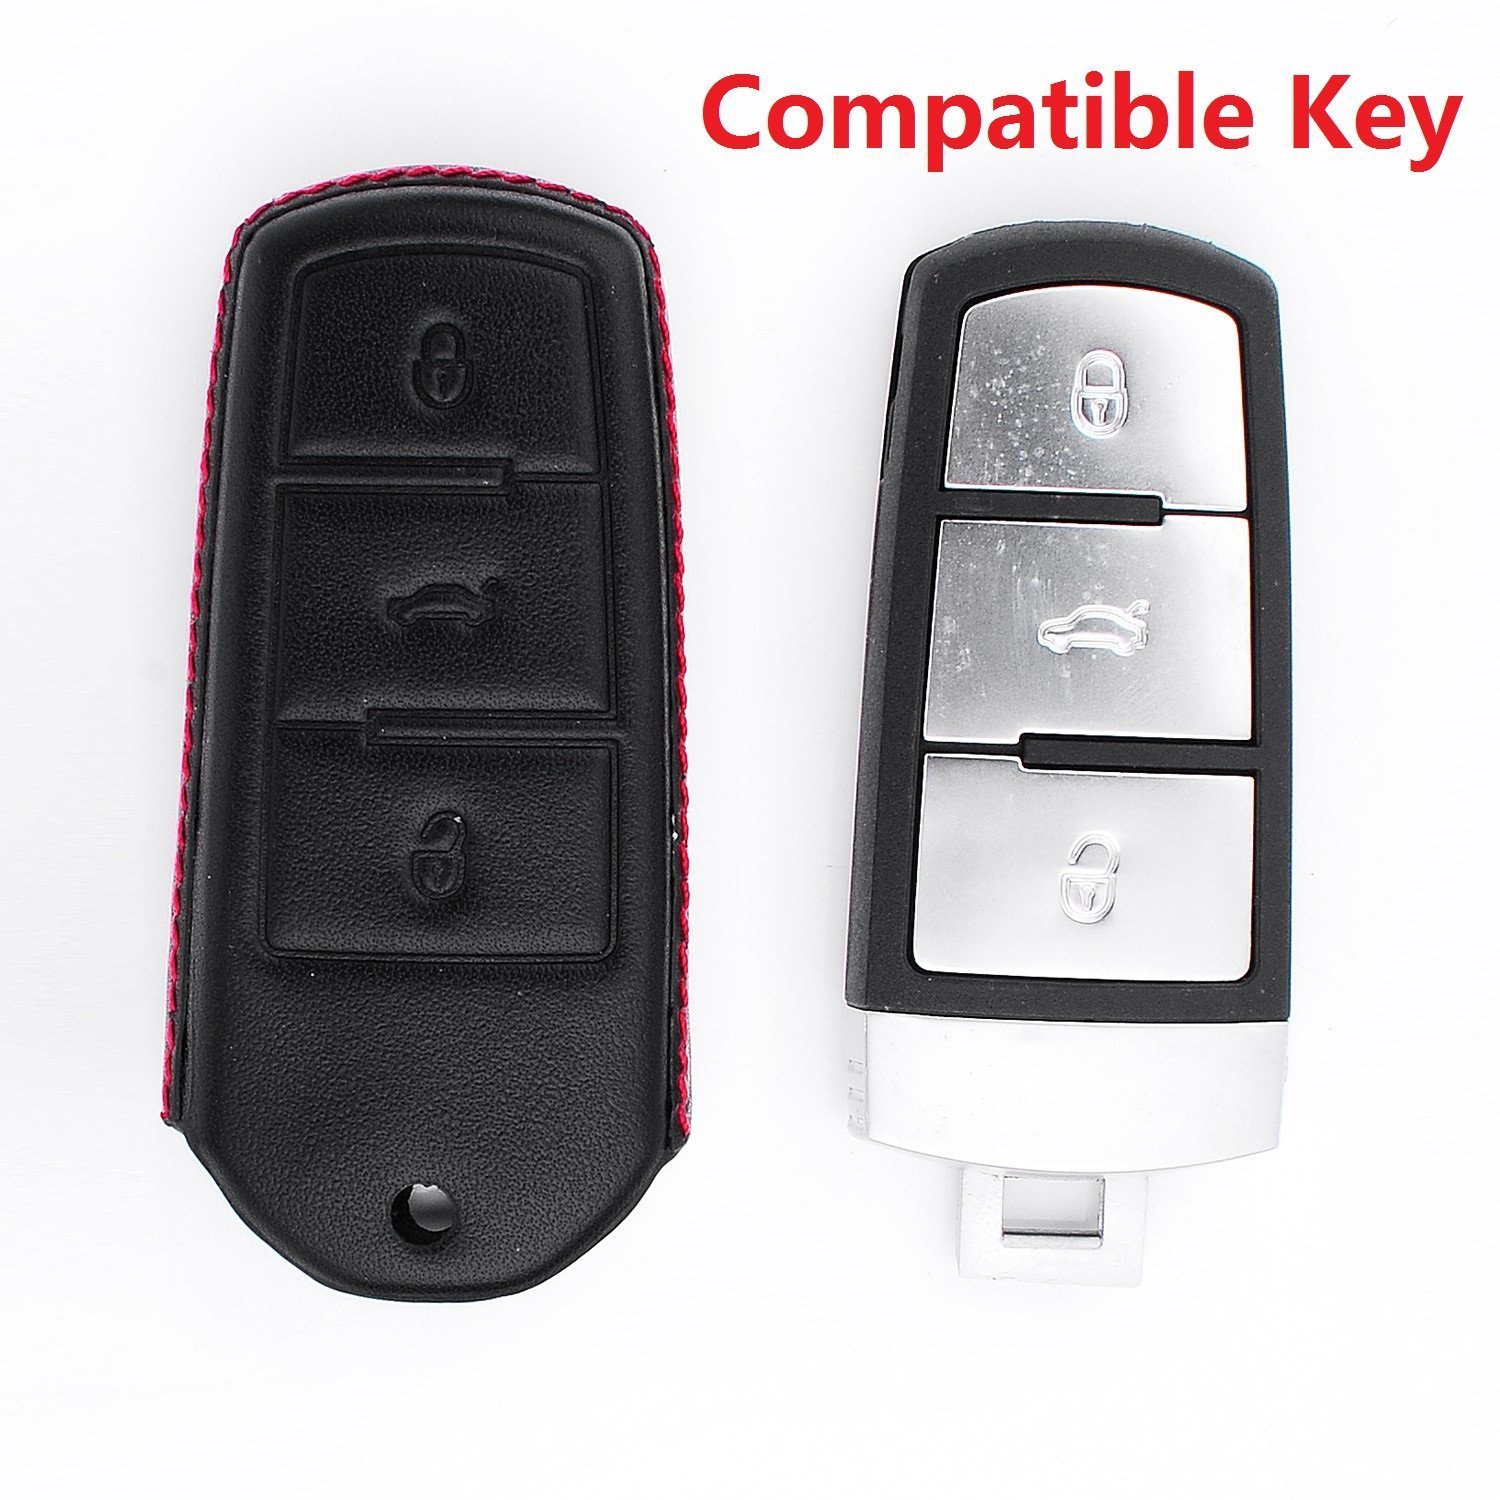 Car Remote Key Pouch Bag Key Rings Kit Keychain Black RoyalFox Genuine 3 Buttons Leather Smart Key Fob case Cover for VW Volkswagen CC Magotan Key